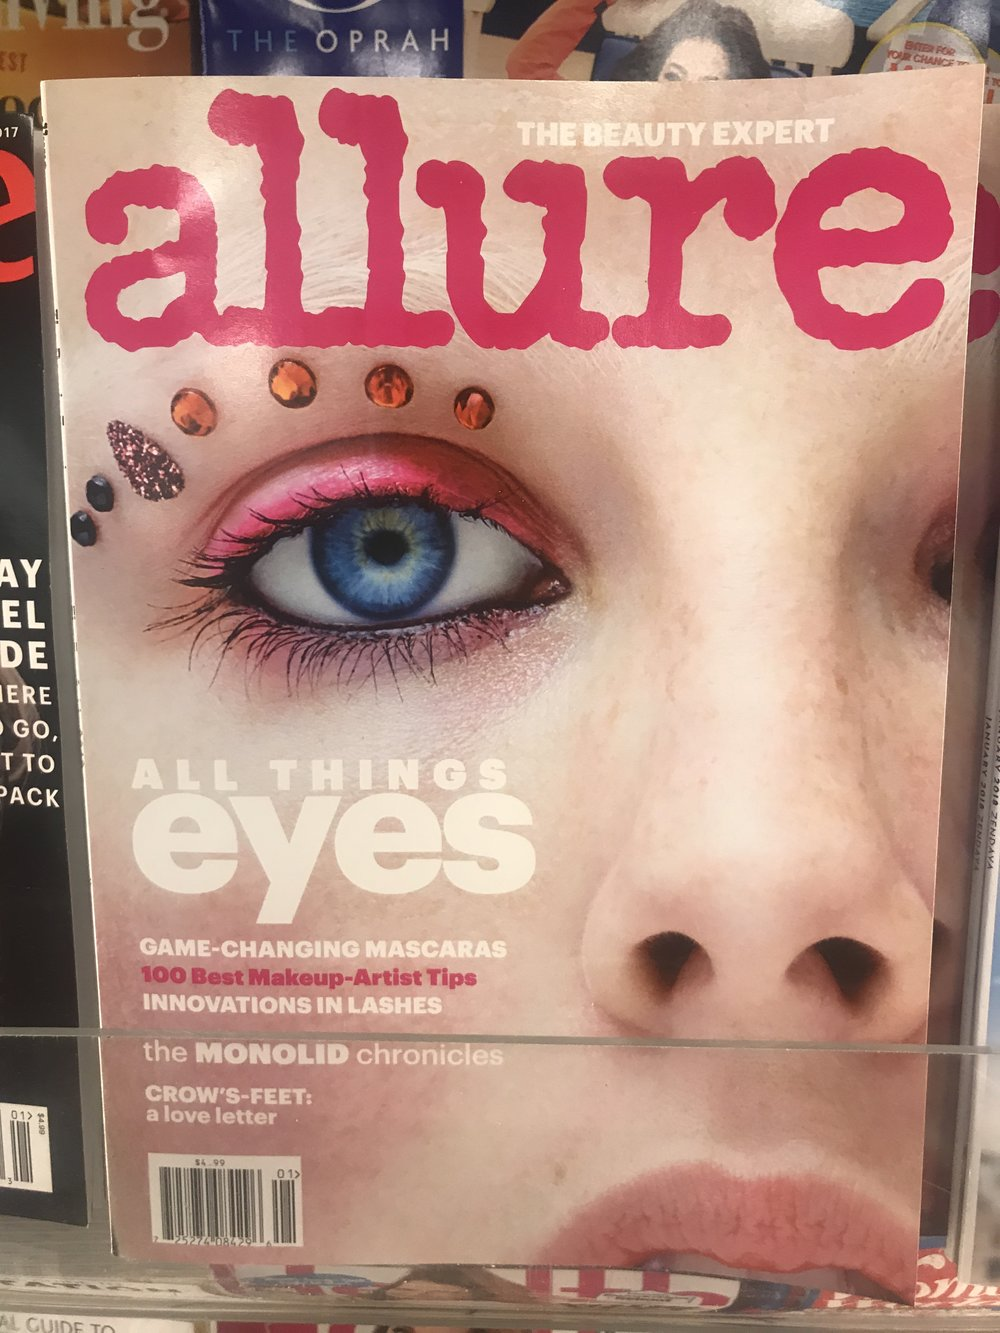 Allure magazine cover eyes - Photo by Nicole Fichera